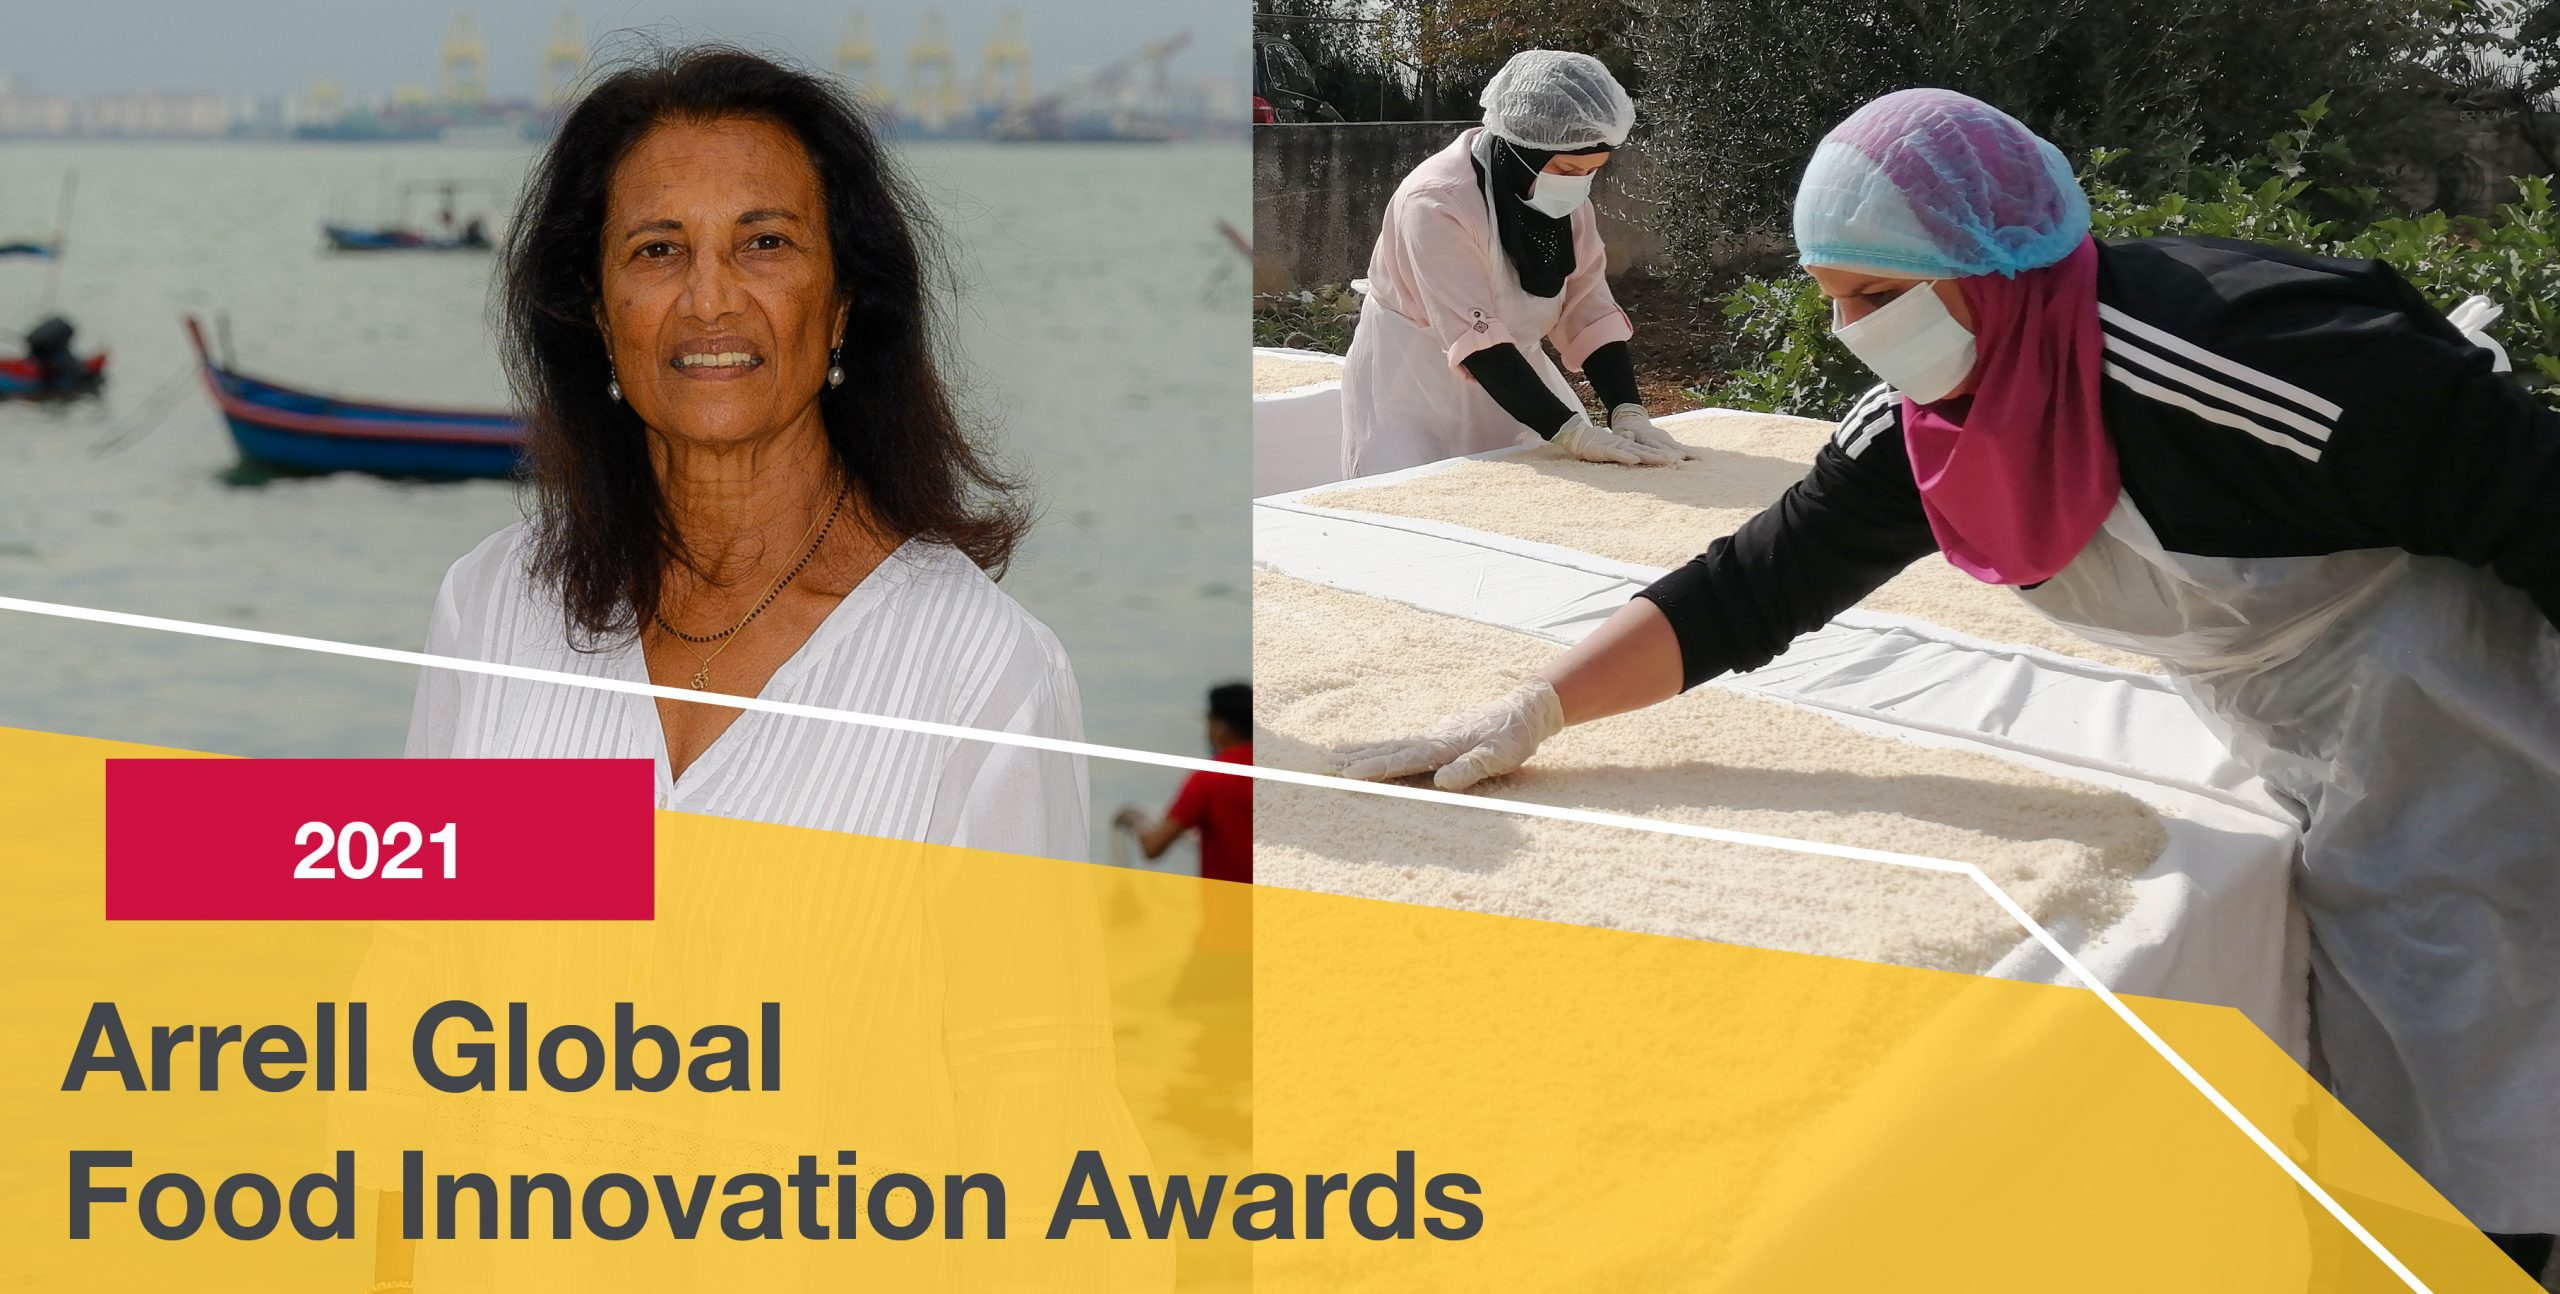 """Text overlay reads """"2021 Arrell Global Food Innovation Awards"""". Photos depict Dr. Thilsted on a beach and women processing rice outside."""